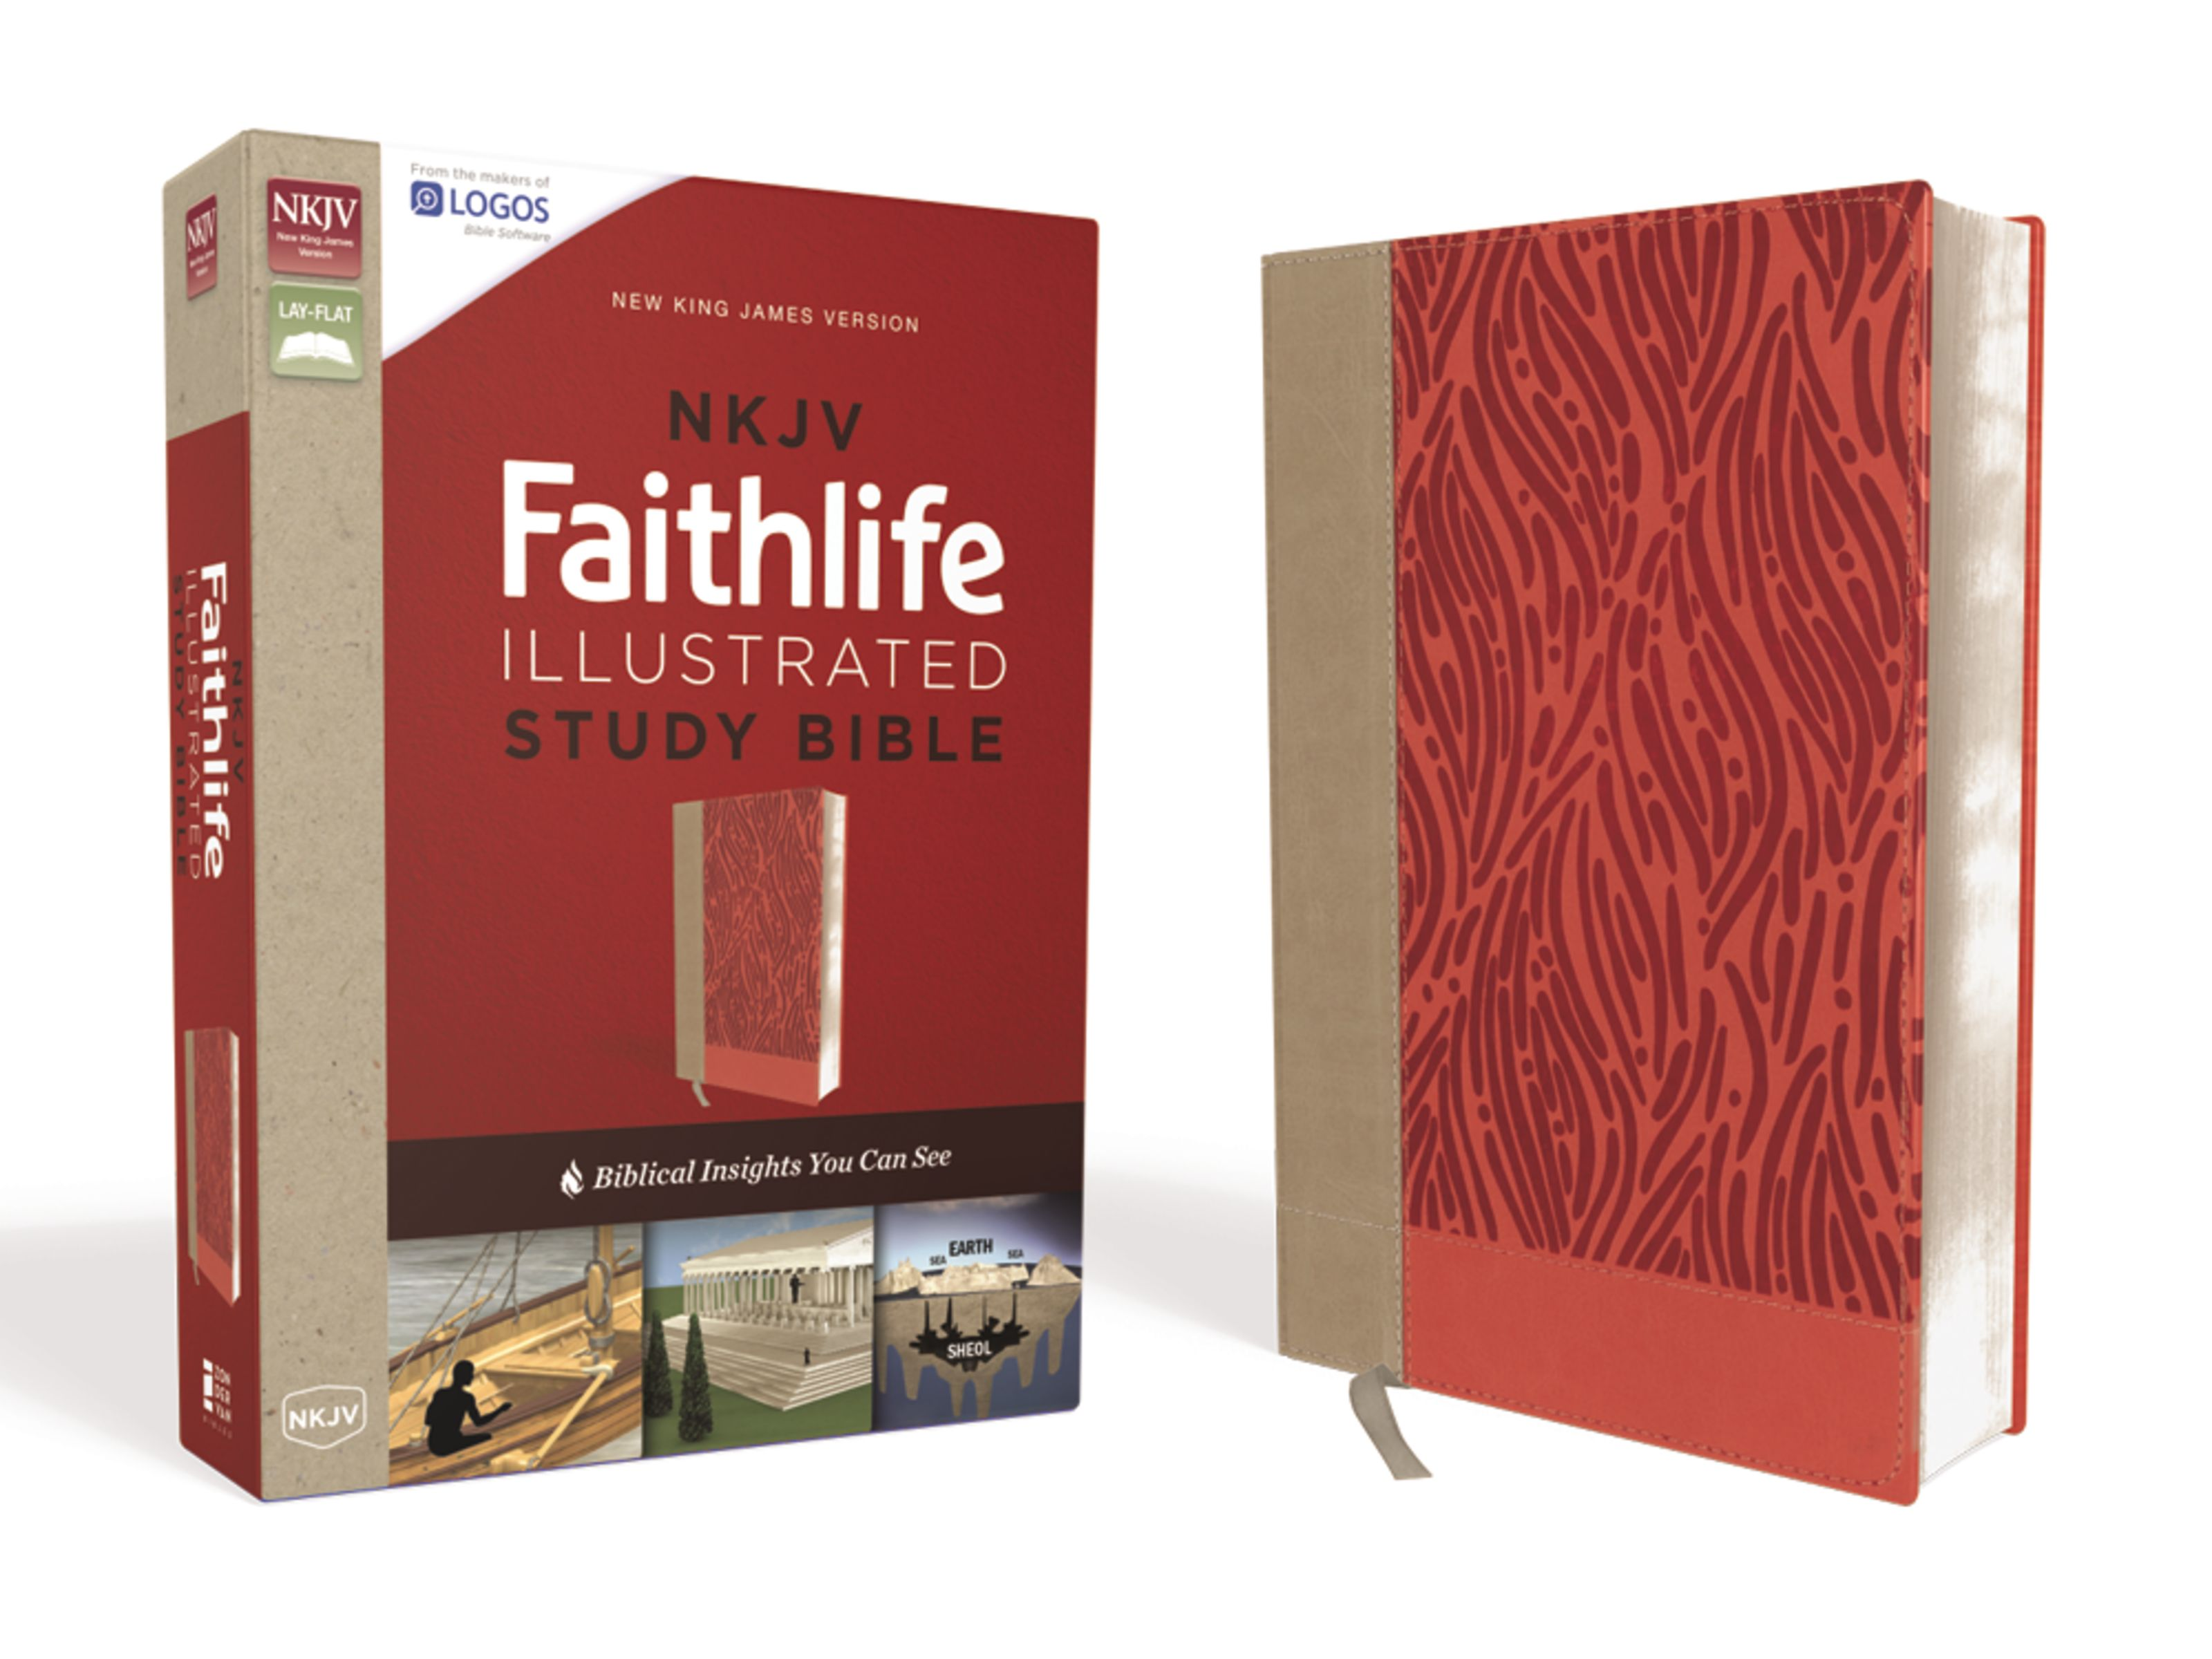 NKJV, Faithlife Illustrated Study Bible, Leathersoft, Pink, Red Letter  Edition